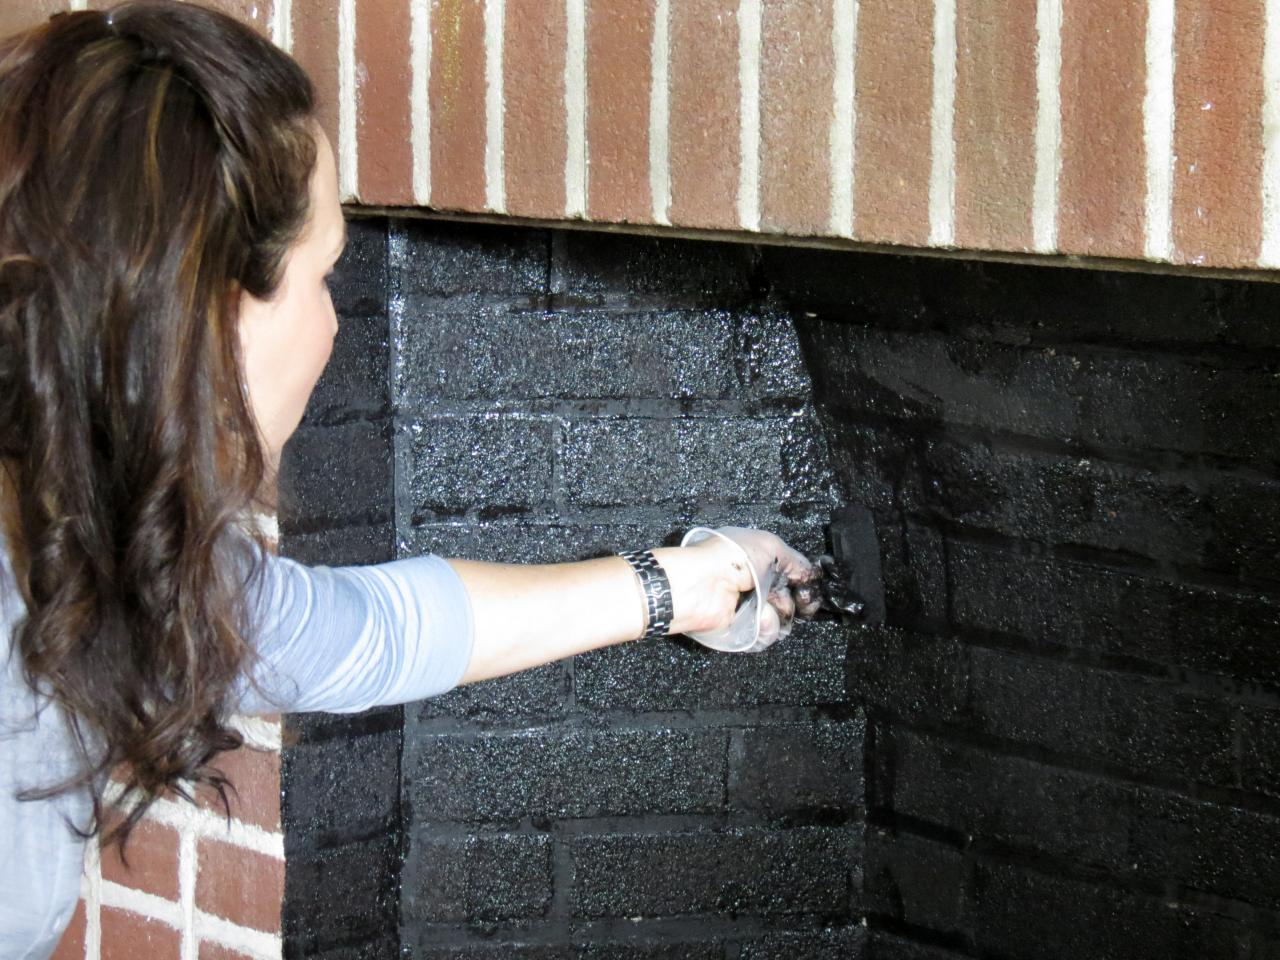 DIY Network has instructions on how to transform an old fireplace with new paint and molding.